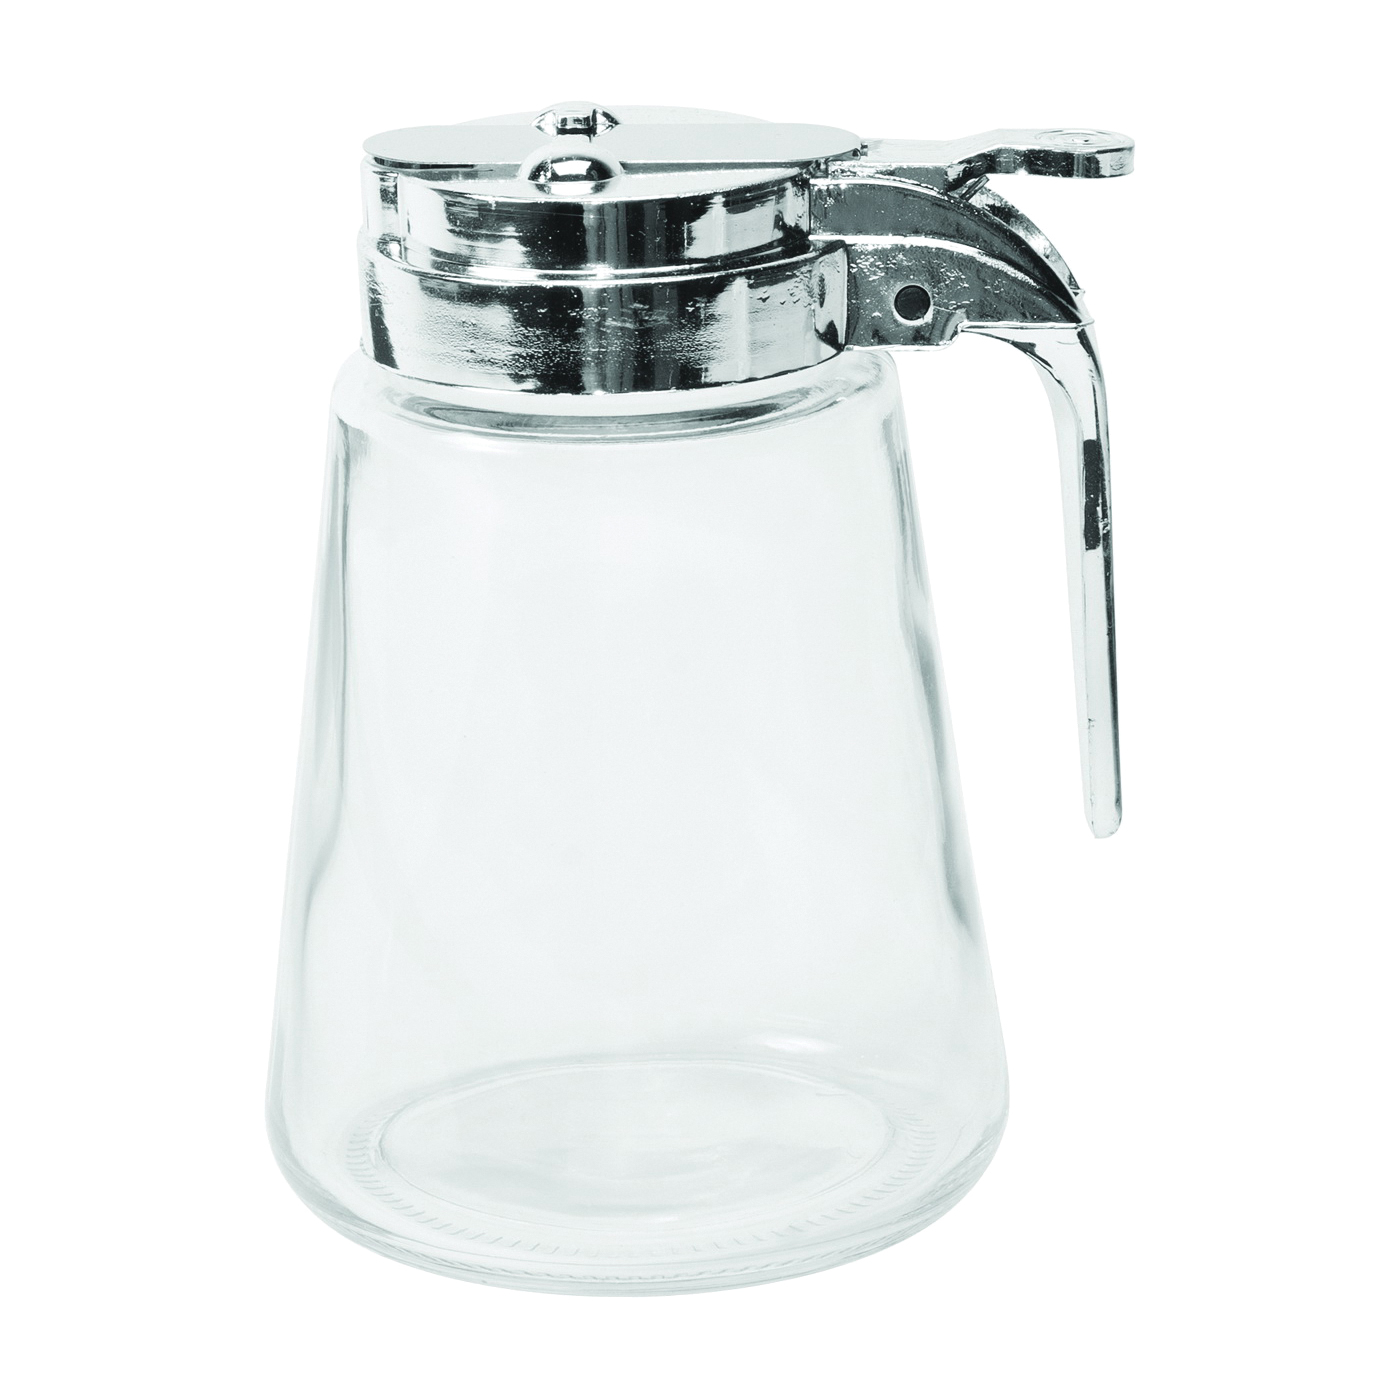 Picture of Oneida 97287 Syrup Pitcher, 8 oz Capacity, Glass/Stainless Steel, Clear